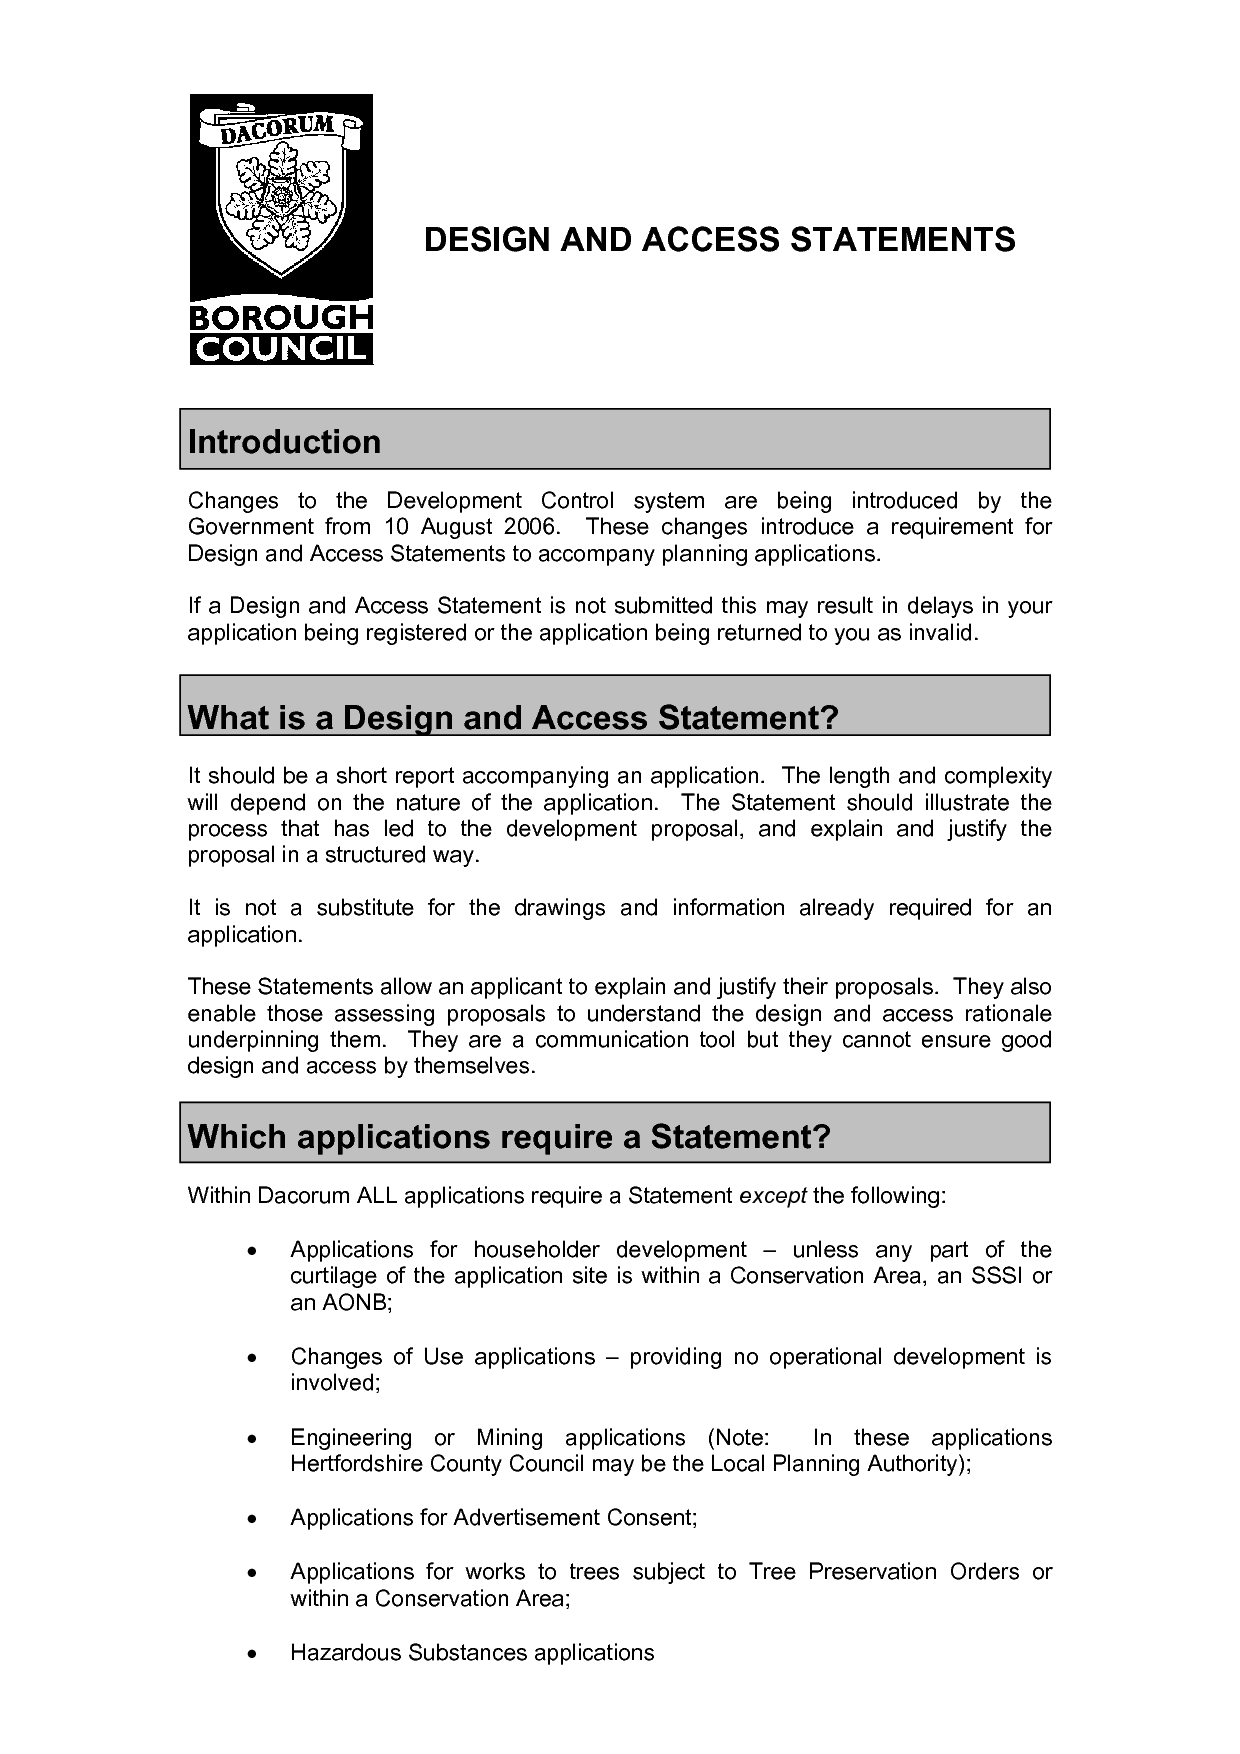 Design and Access Statement Example